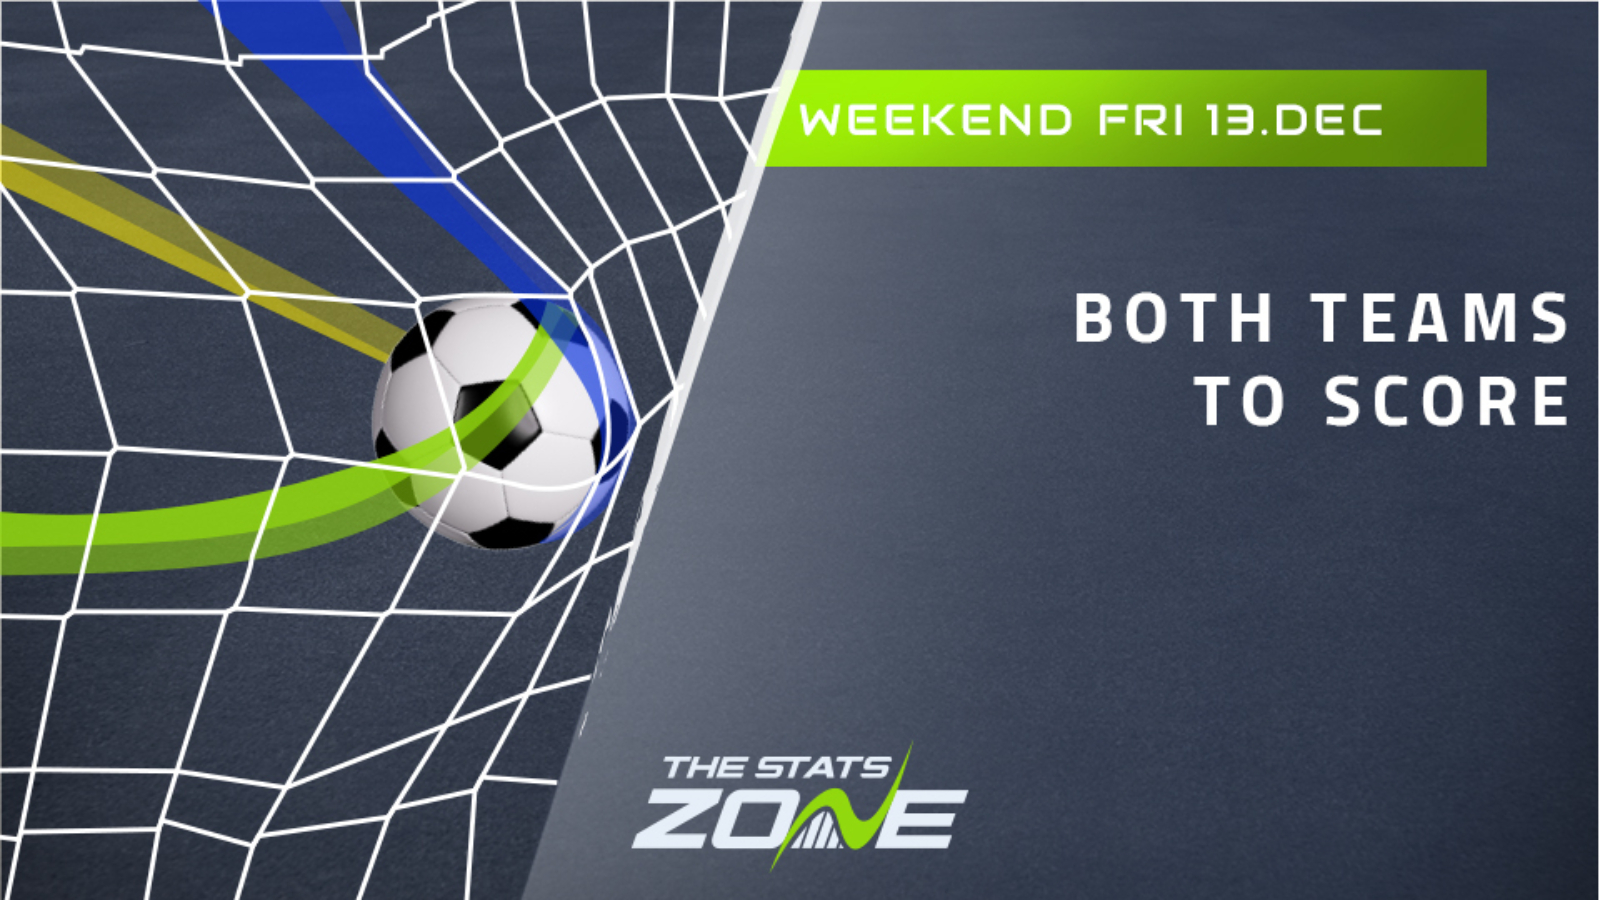 Tips For Football Coupon This Weekend